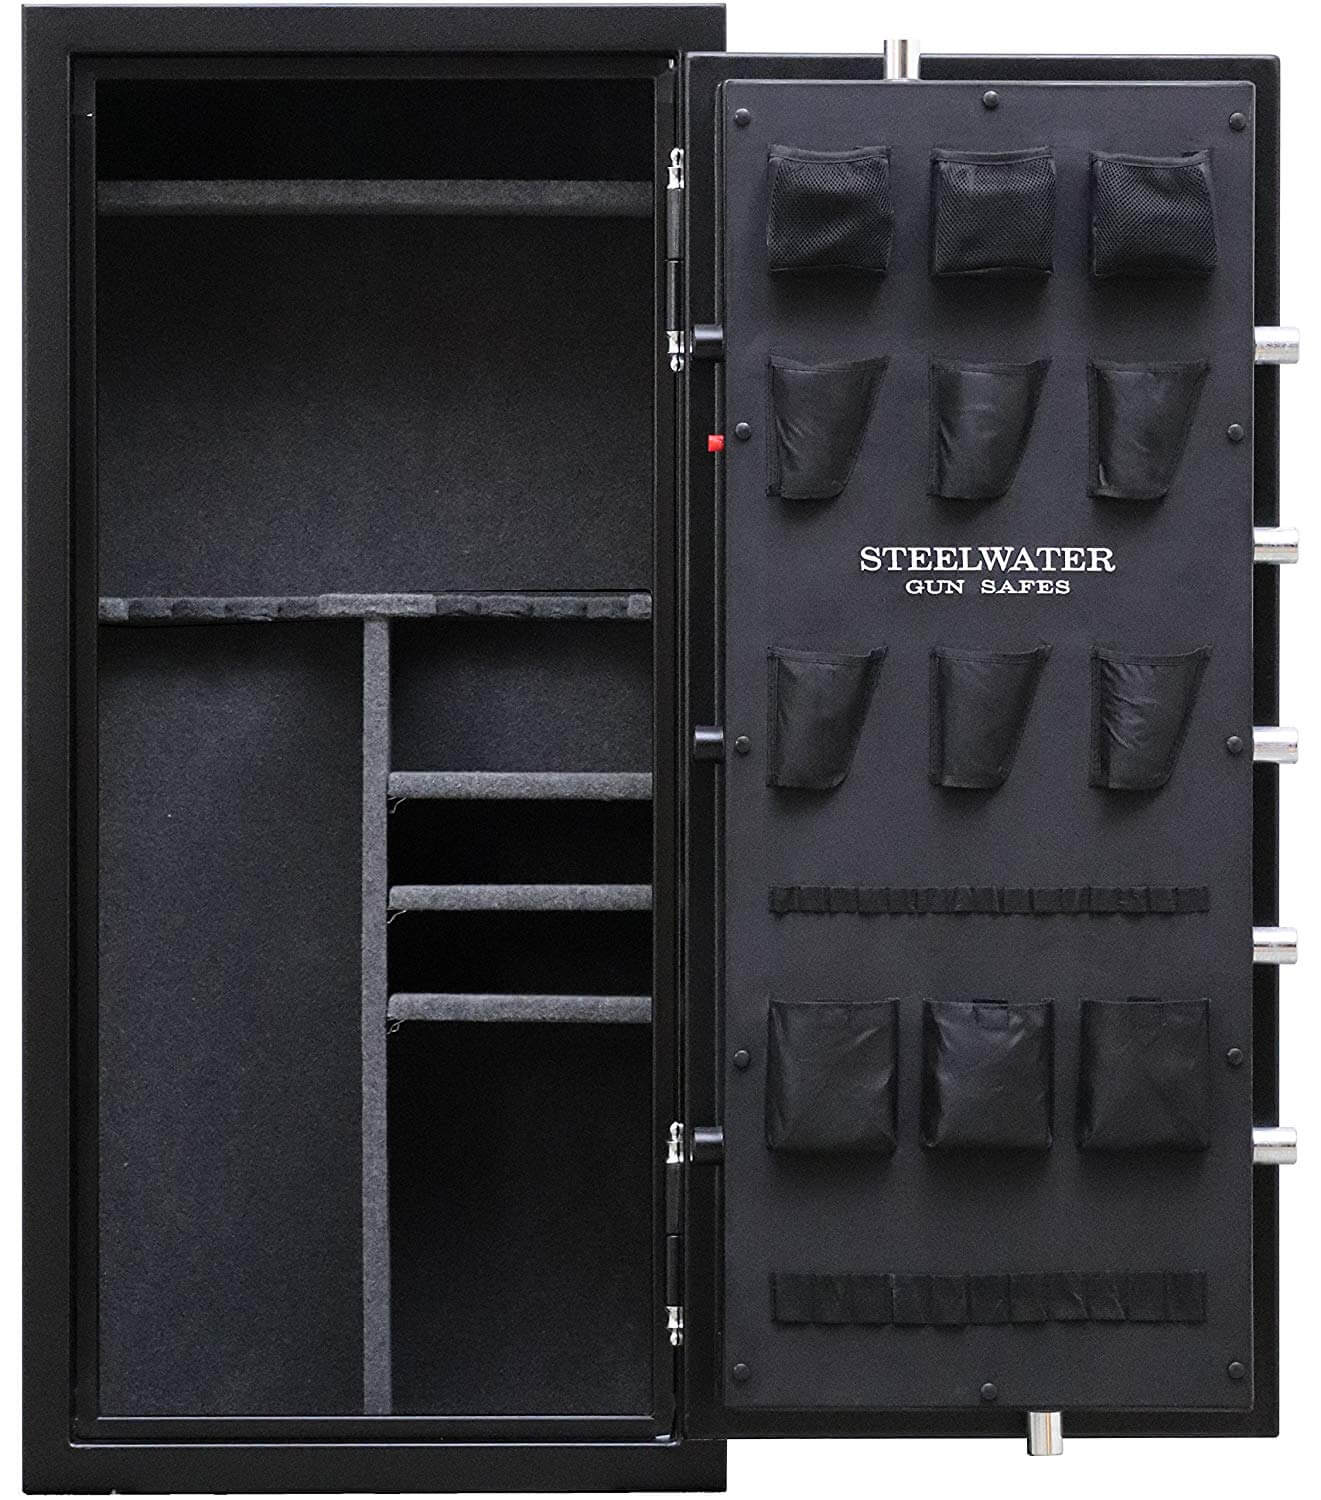 Steelwater safe door storage